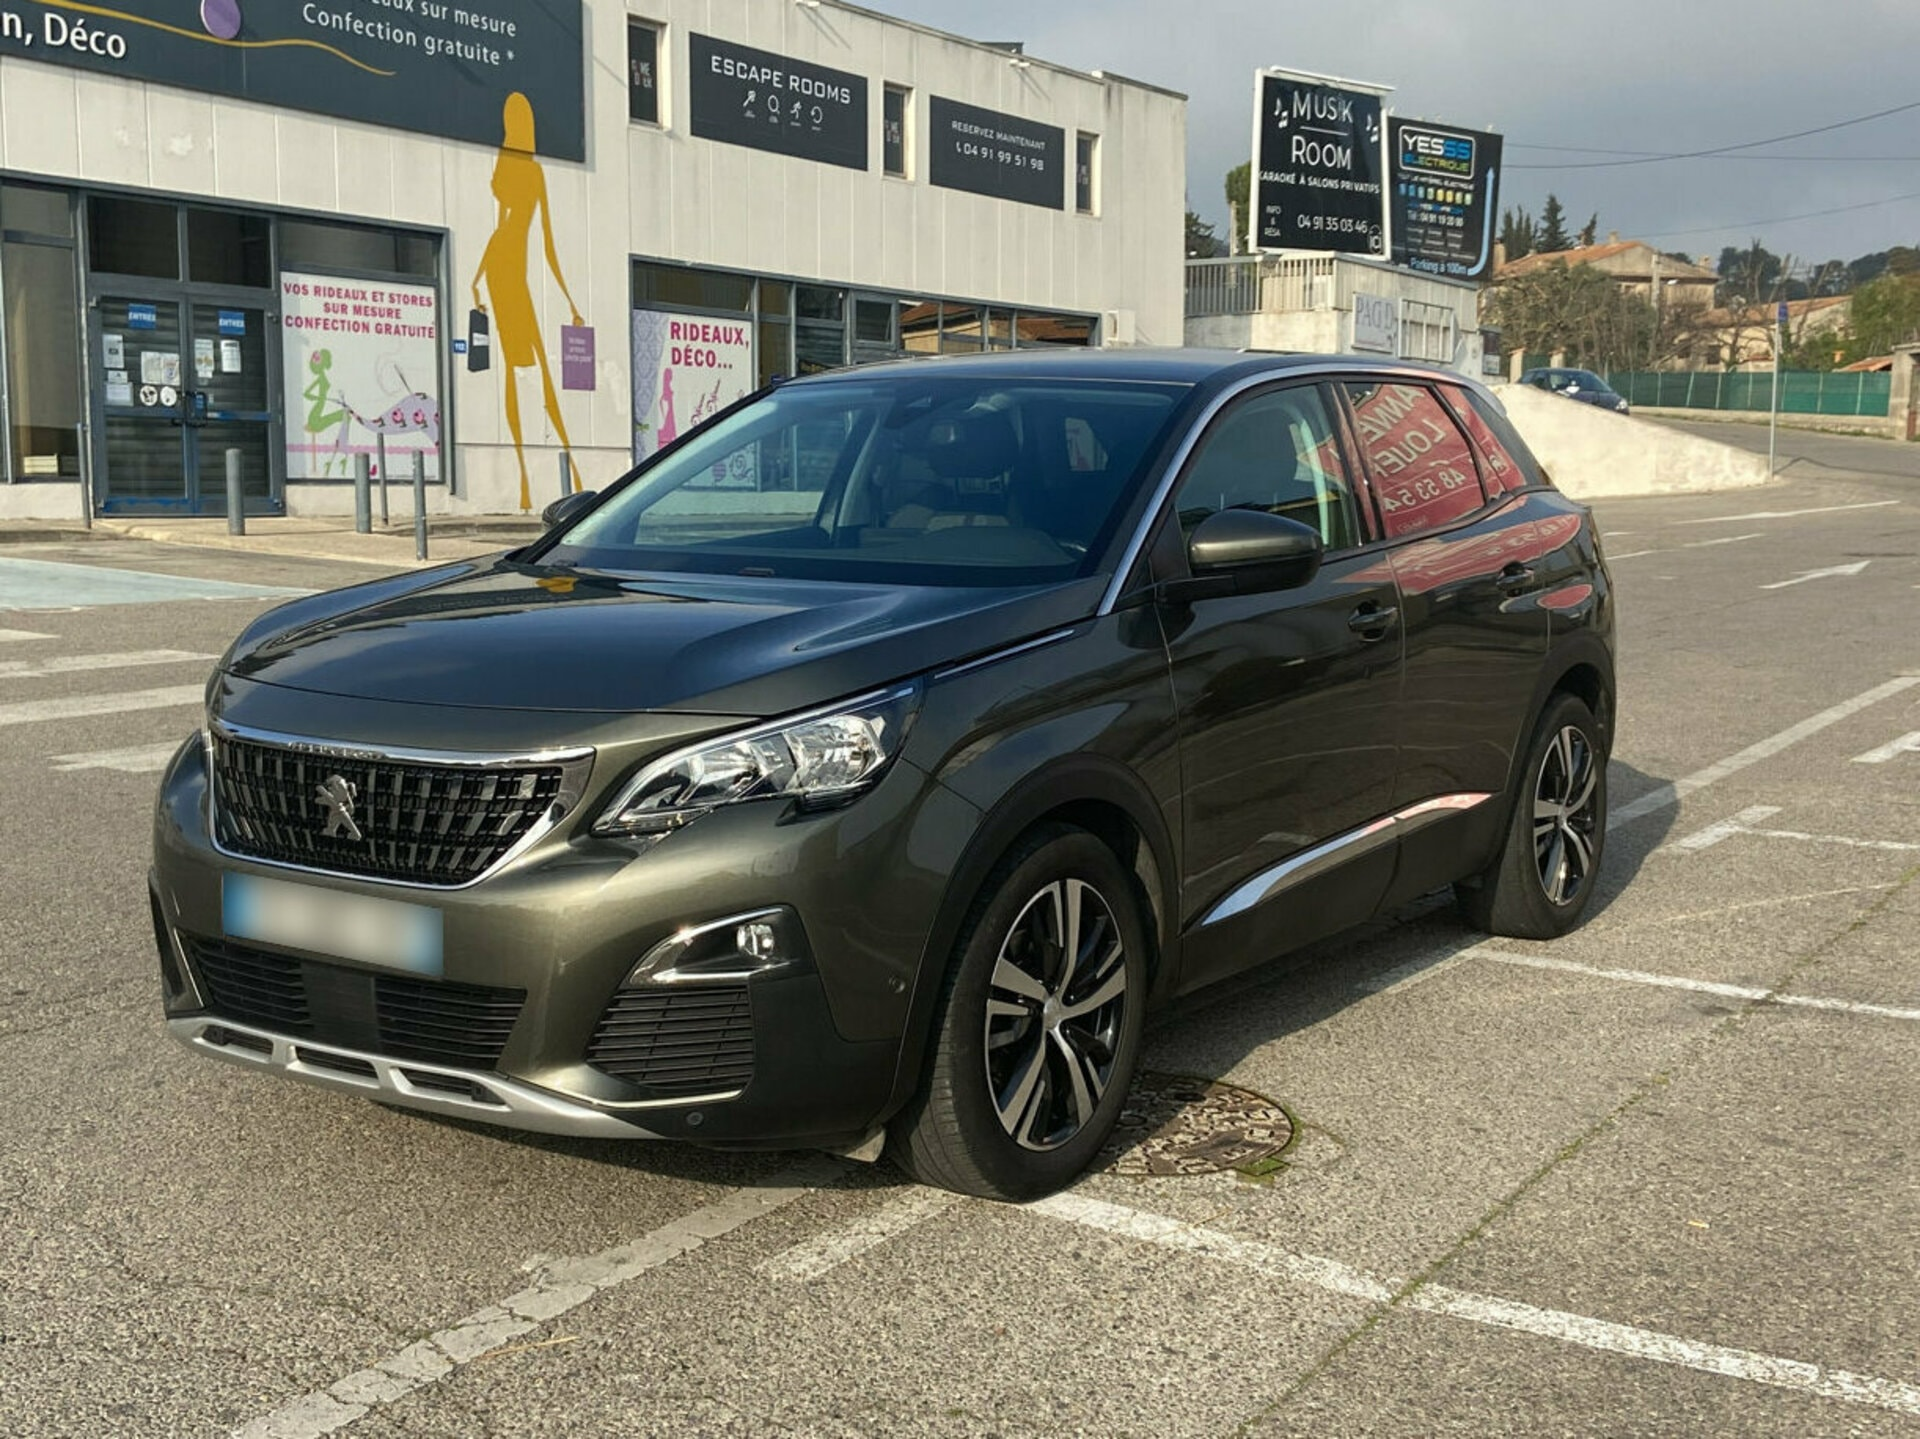 PEUGEOT 3008 GENERATION-II 1.2 PURETECH 130 ALLURE BUSINESS EAT BVA START-STOP - Carventura